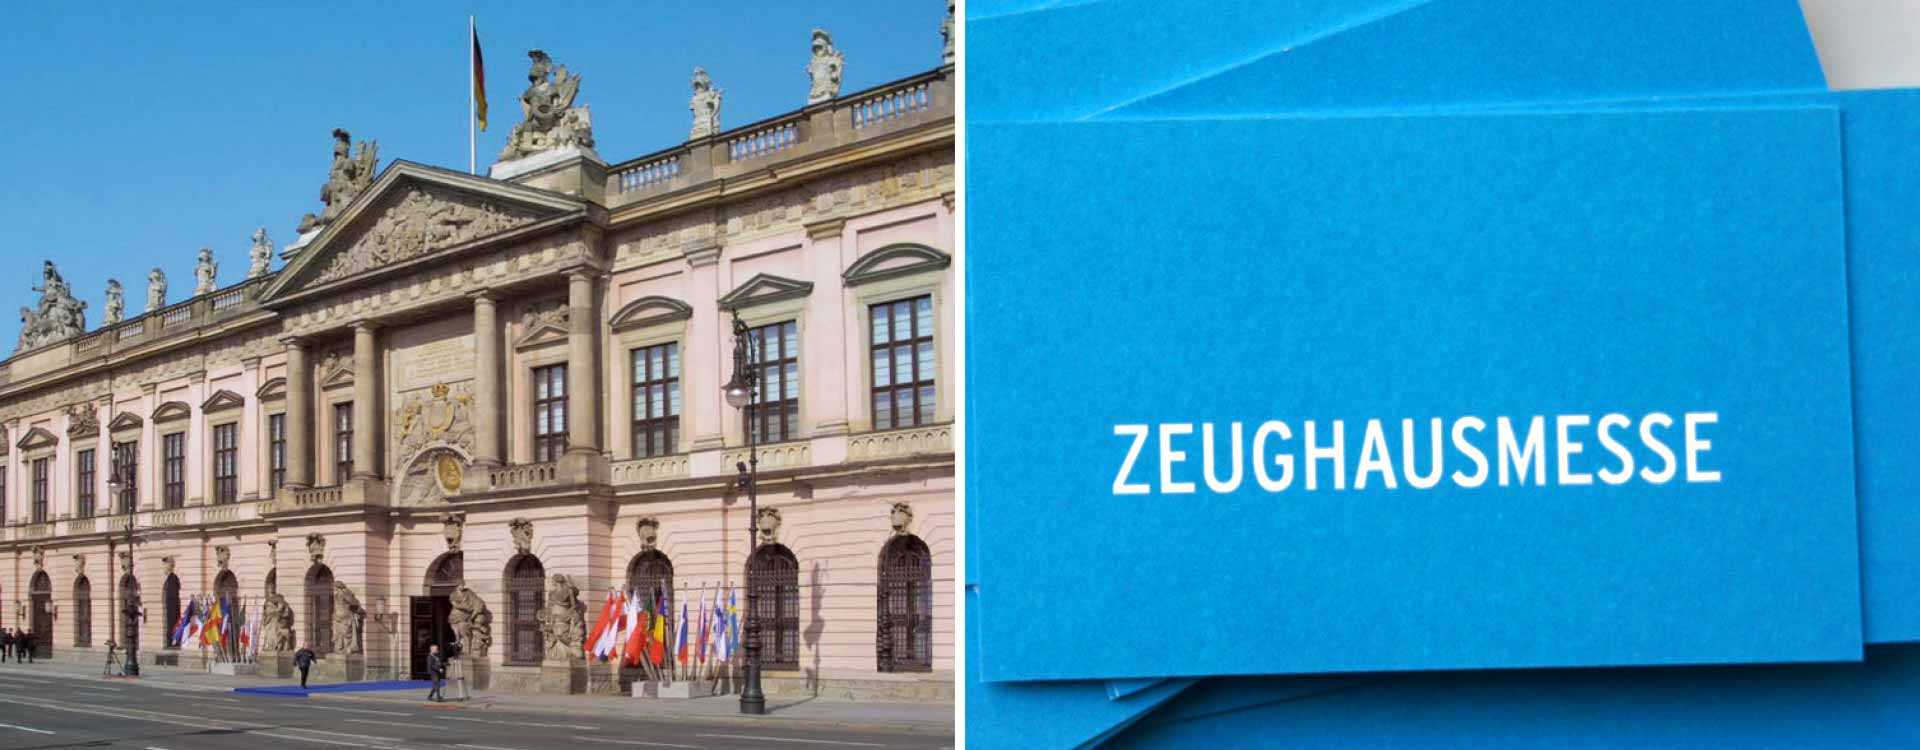 Front view of Zeughaus Berlin, business card of Zeughausmesse; Design: Kattrin Richter | Graphic Design Studio